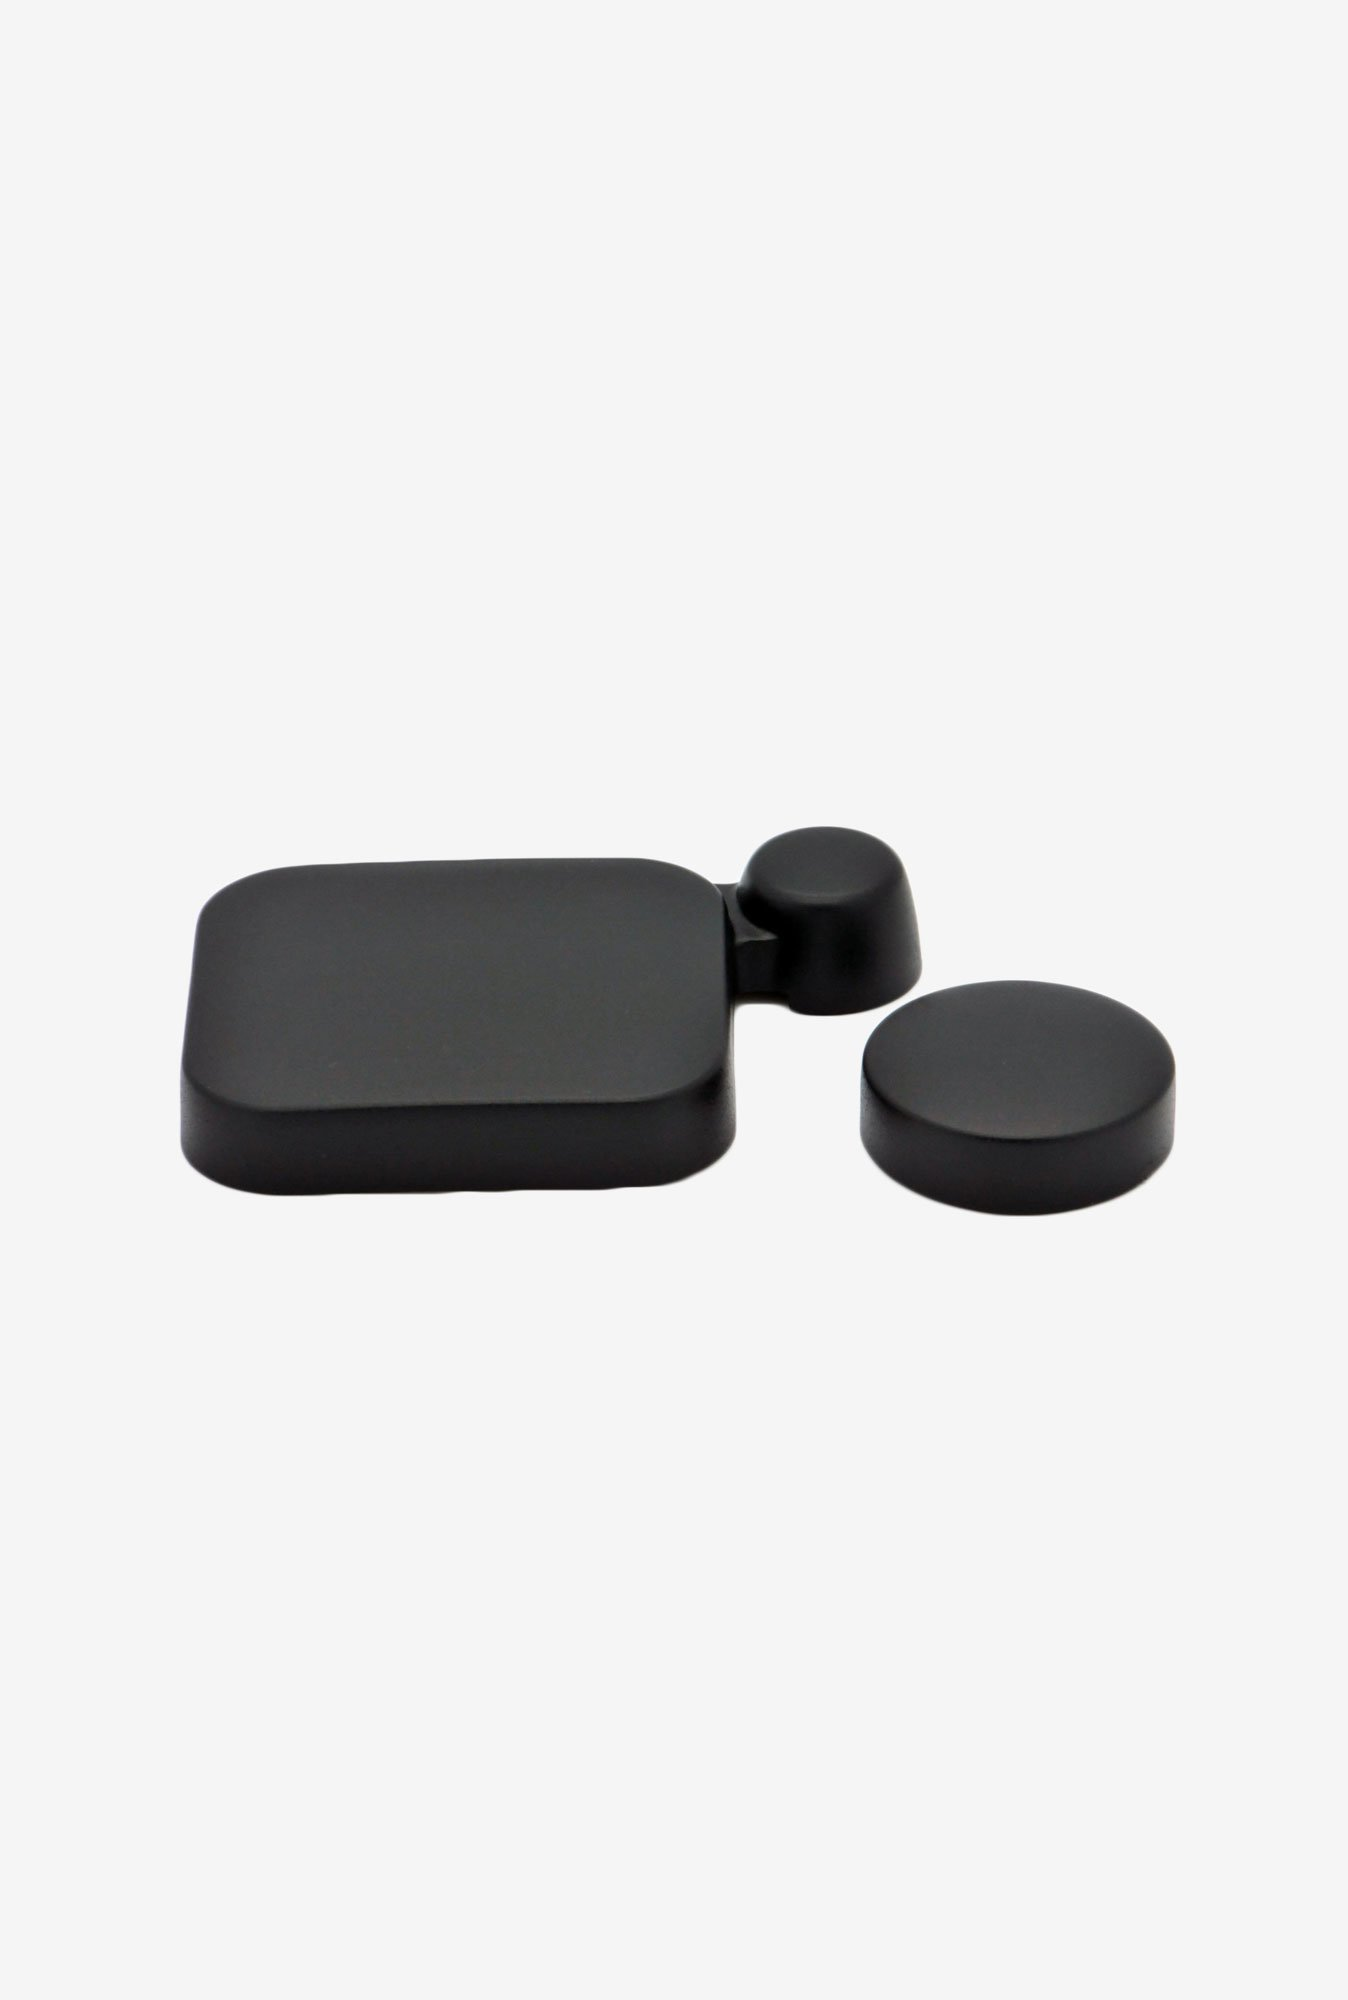 Smatree SM-04020871 Protective Lens Cap Covers (black)